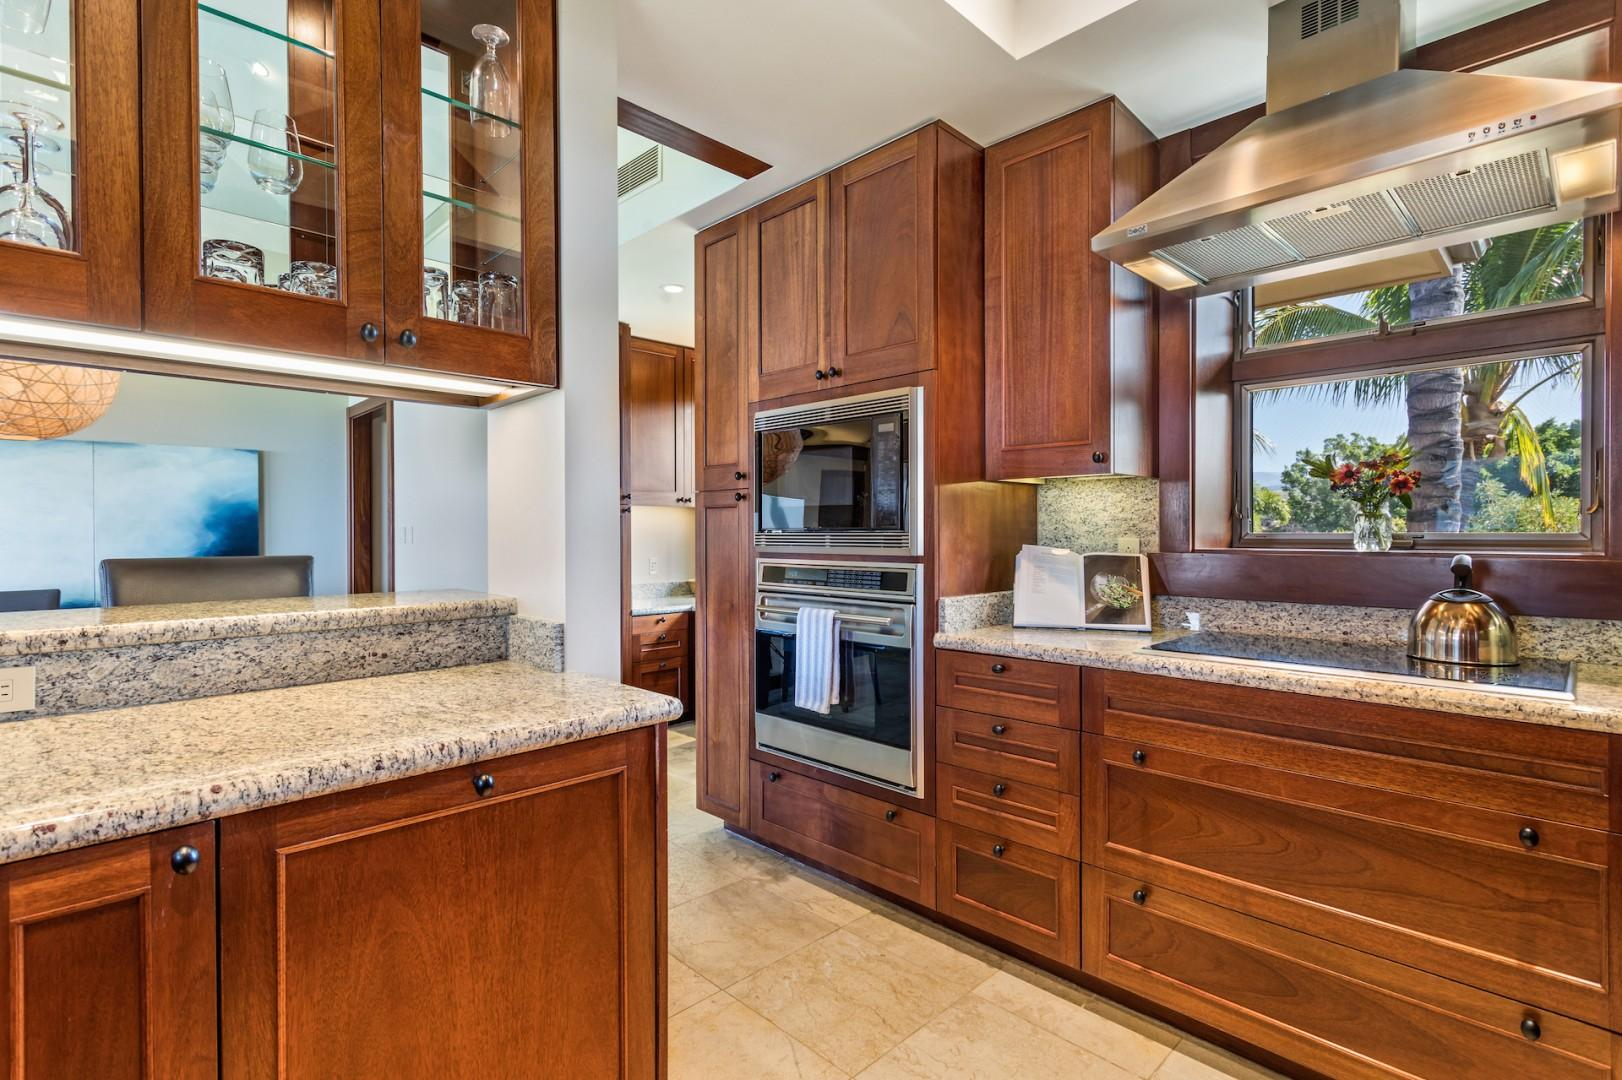 High-end appliances and natural light abound in this modern gourmet kitchen.